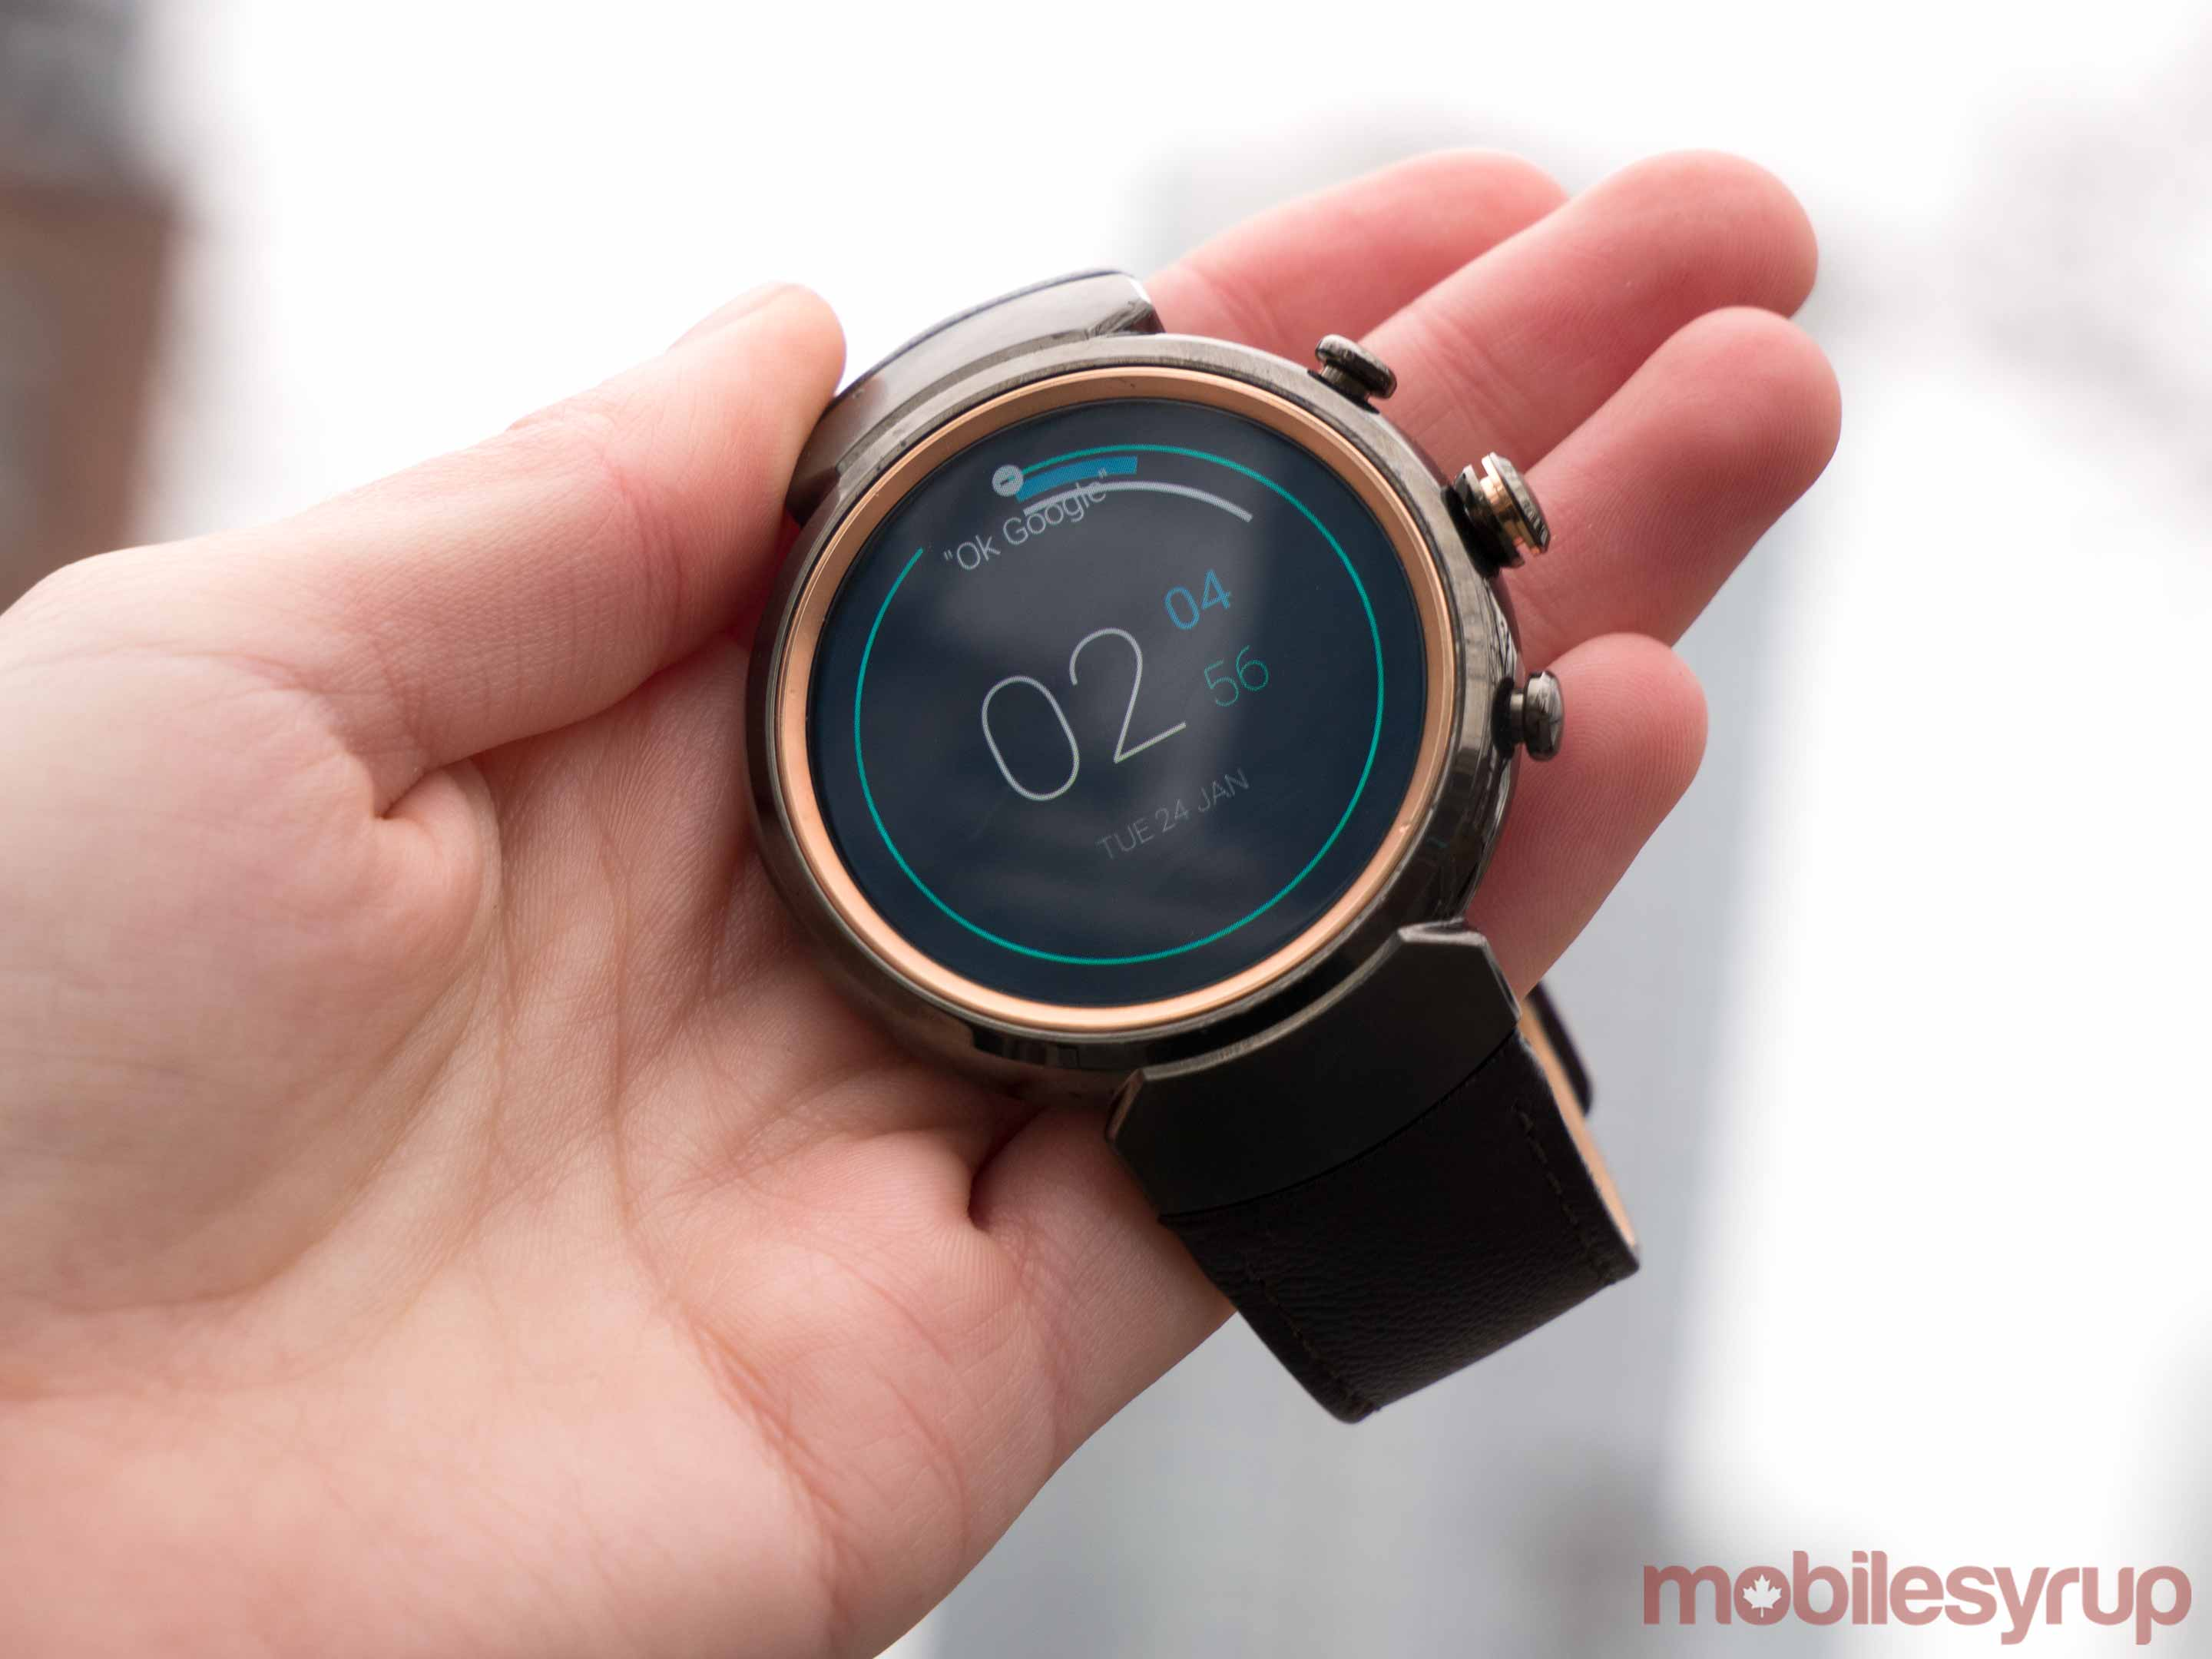 Holding a ZenWatch 3